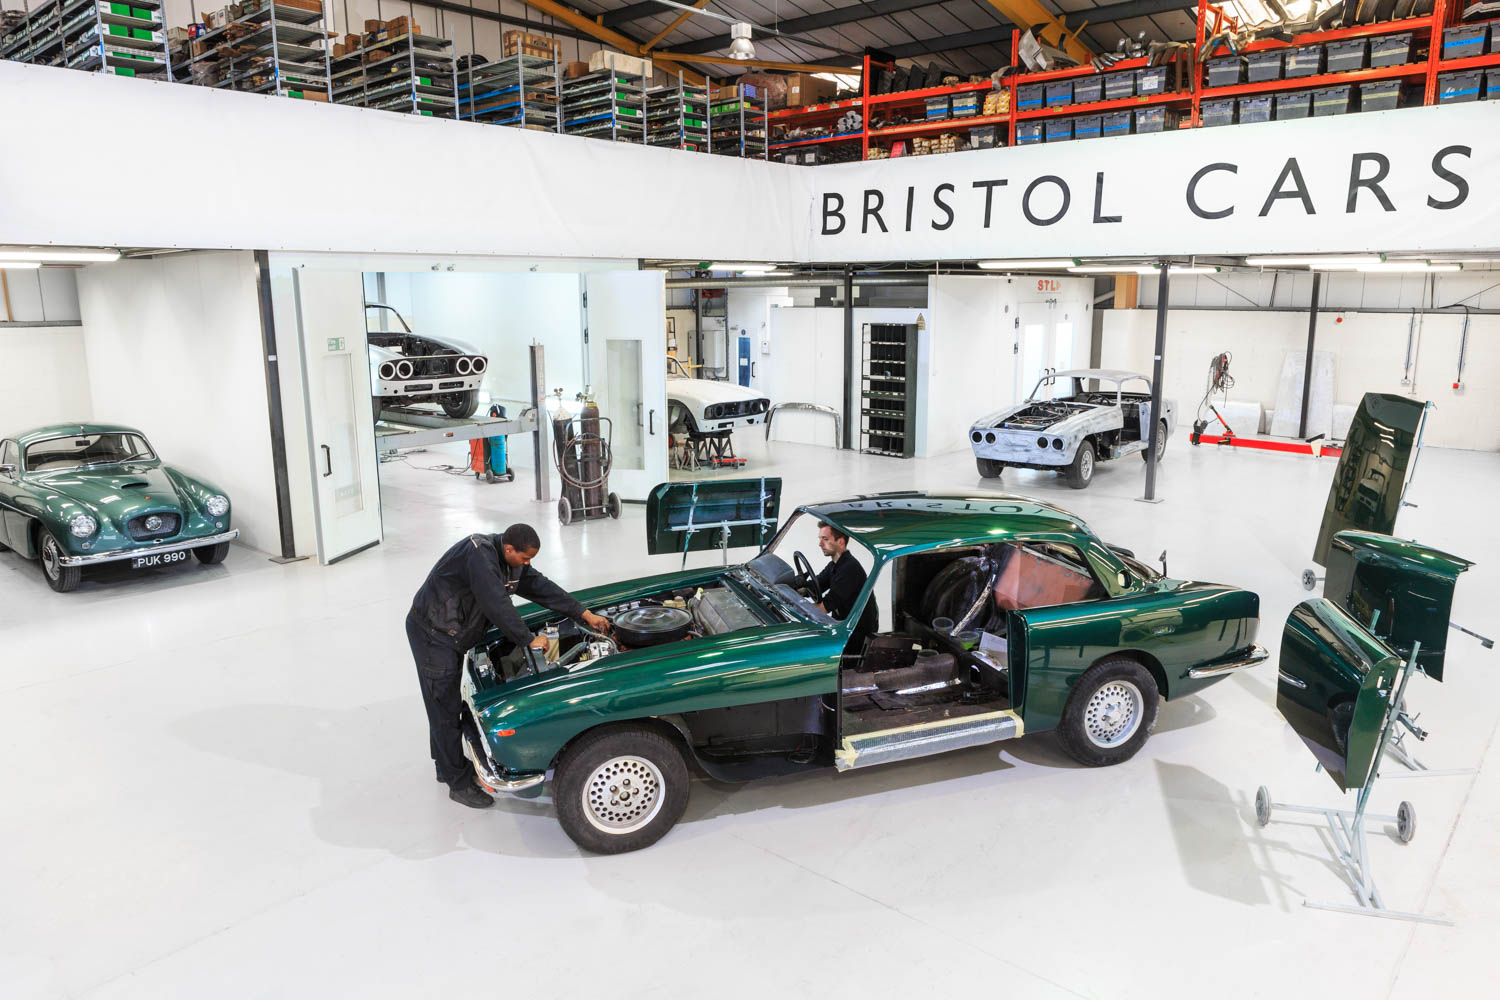 Exclusive, Expensive, Eccentric and Expired – A Potted History of Bristol Cars